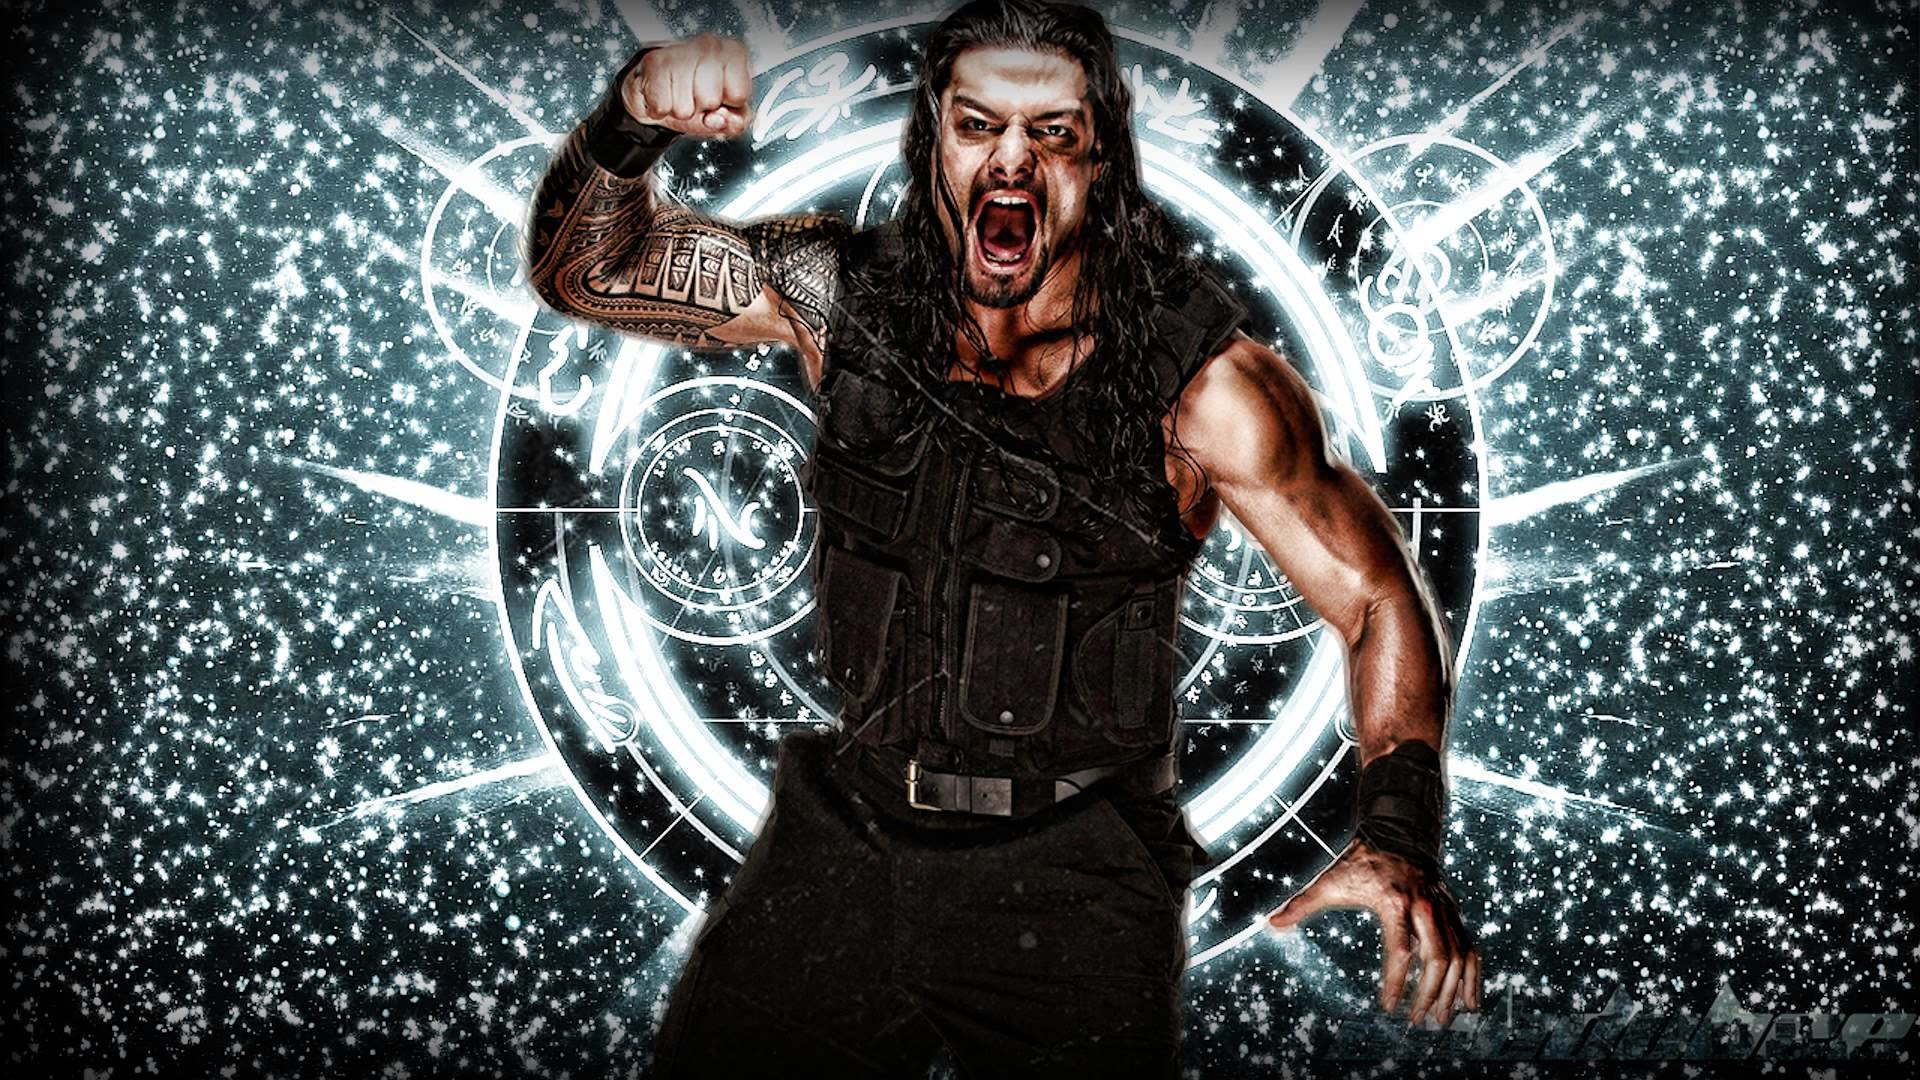 1920x1080 roman reigns logo - Google Search | wrestlers | Pinterest | Logos .